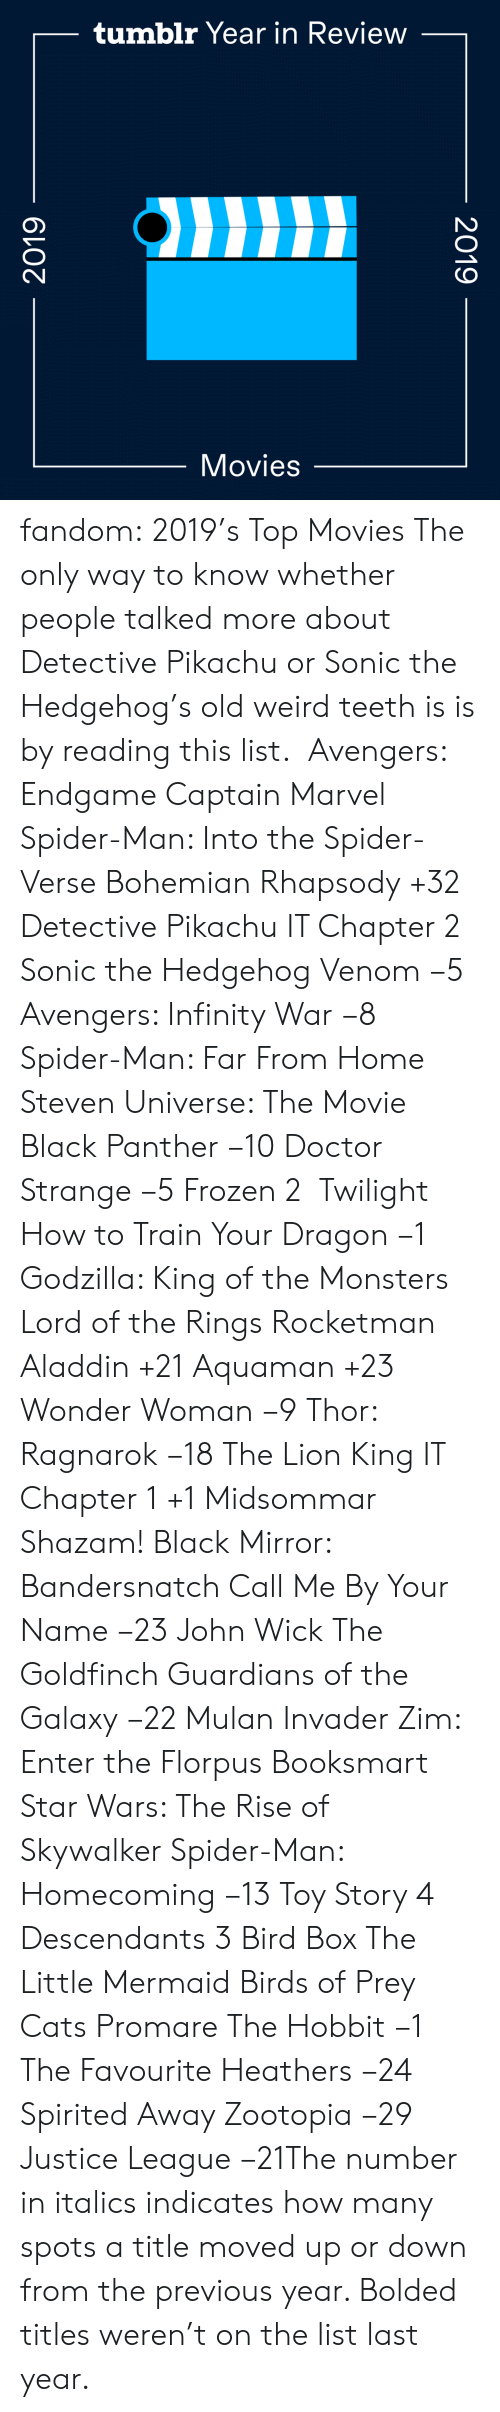 Infinity: tumblr Year in Review  Movies  2019  2019 fandom:  2019's Top Movies  The only way to know whether people talked more about Detective Pikachu or Sonic the Hedgehog's old weird teeth is is by reading this list.   Avengers: Endgame  Captain Marvel  Spider-Man: Into the Spider-Verse  Bohemian Rhapsody +32  Detective Pikachu  IT Chapter 2  Sonic the Hedgehog  Venom −5  Avengers: Infinity War −8  Spider-Man: Far From Home  Steven Universe: The Movie  Black Panther −10  Doctor Strange −5  Frozen 2   Twilight  How to Train Your Dragon −1  Godzilla: King of the Monsters  Lord of the Rings  Rocketman  Aladdin +21  Aquaman +23  Wonder Woman −9  Thor: Ragnarok −18  The Lion King  IT Chapter 1 +1  Midsommar  Shazam!  Black Mirror: Bandersnatch  Call Me By Your Name −23  John Wick  The Goldfinch  Guardians of the Galaxy −22  Mulan  Invader Zim: Enter the Florpus  Booksmart  Star Wars: The Rise of Skywalker  Spider-Man: Homecoming −13  Toy Story 4  Descendants 3  Bird Box  The Little Mermaid  Birds of Prey  Cats  Promare  The Hobbit −1  The Favourite  Heathers −24  Spirited Away  Zootopia −29 Justice League −21The number in italics indicates how many spots a title moved up or down from the previous year. Bolded titles weren't on the list last year.